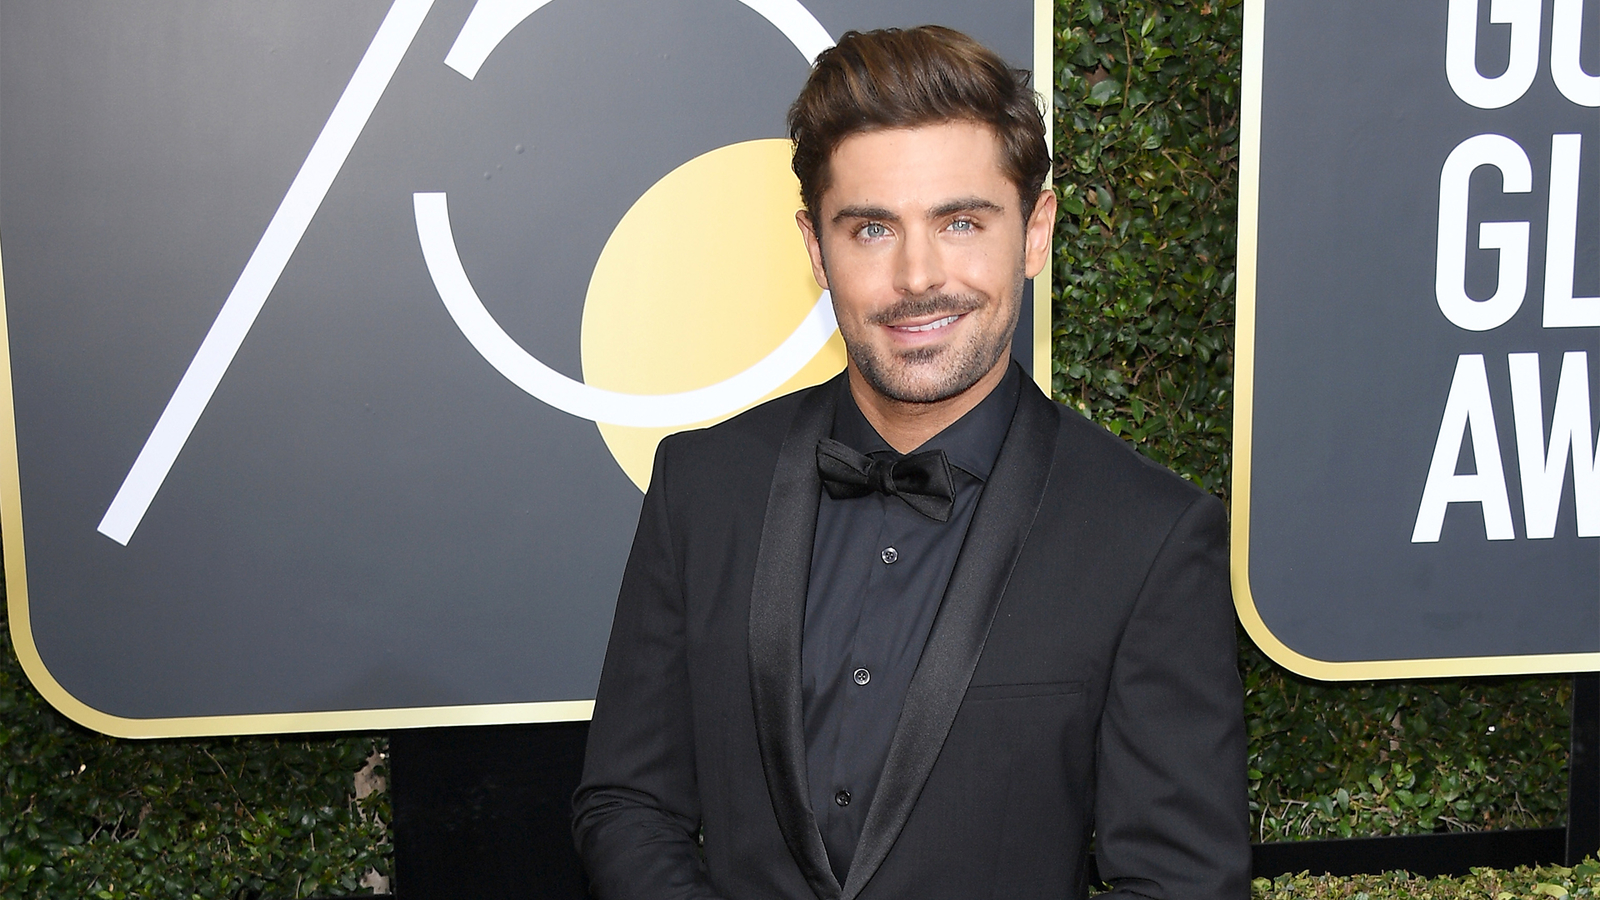 Zac Efron to star in remake of 'Three Men and a Baby' - Alvinology